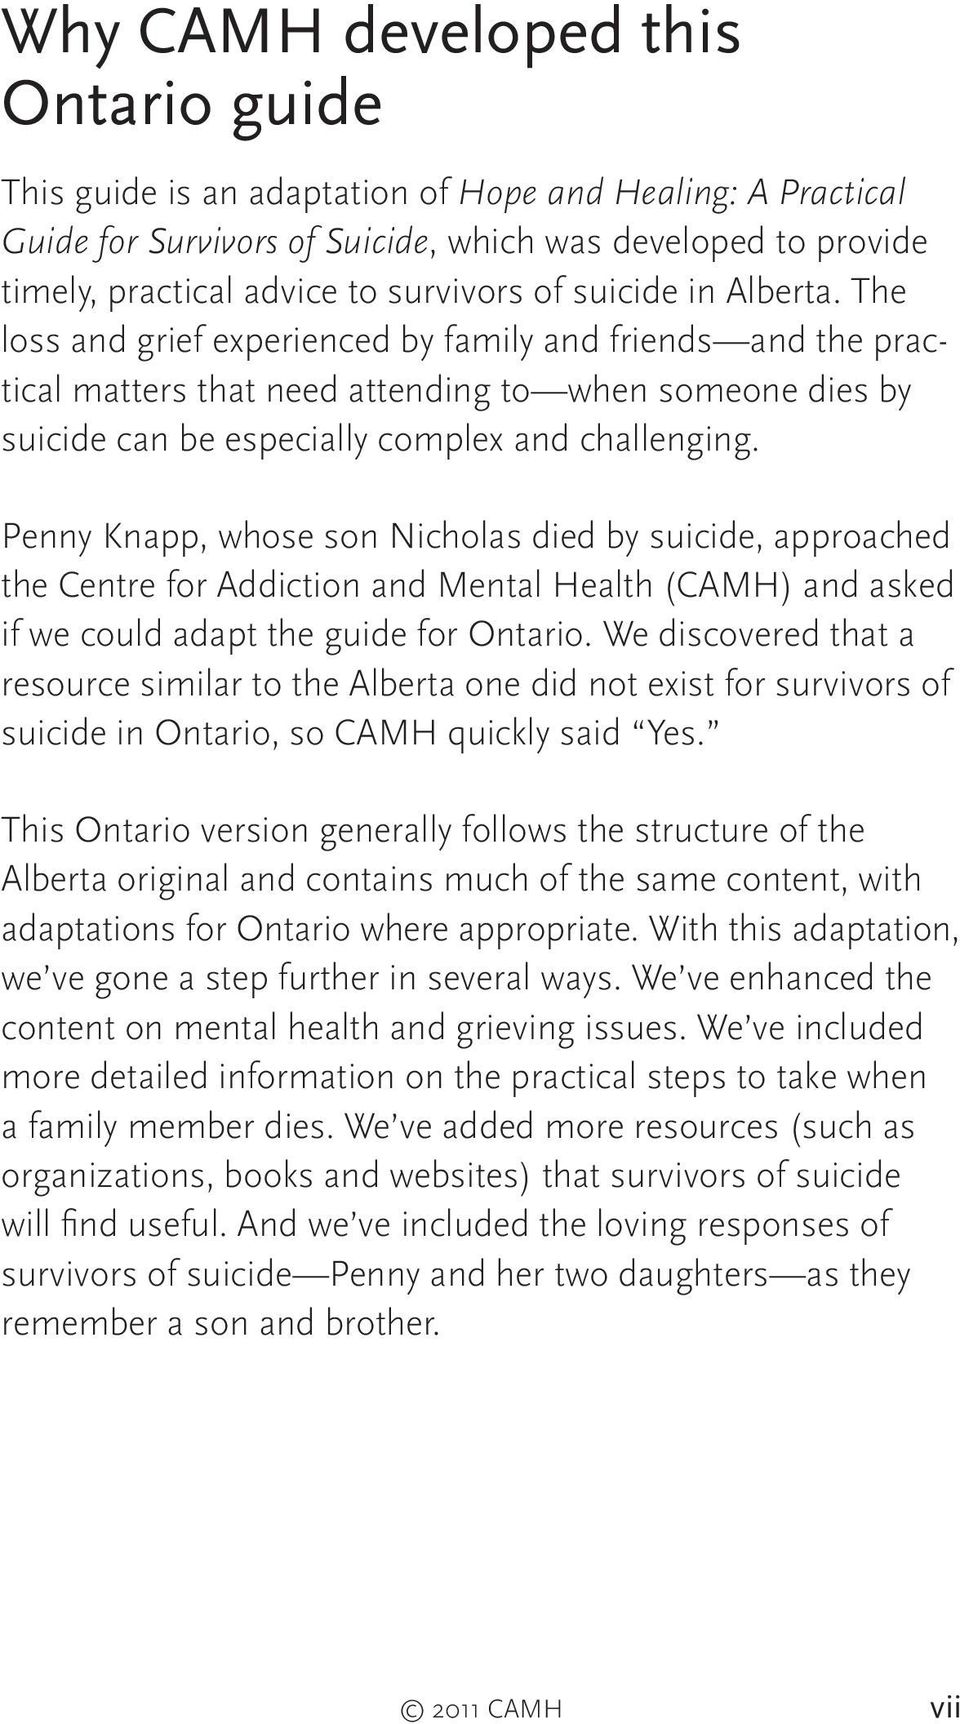 Penny Knapp, whose son Nicholas died by suicide, approached the Centre for Addiction and Mental Health (CAMH) and asked if we could adapt the guide for Ontario.